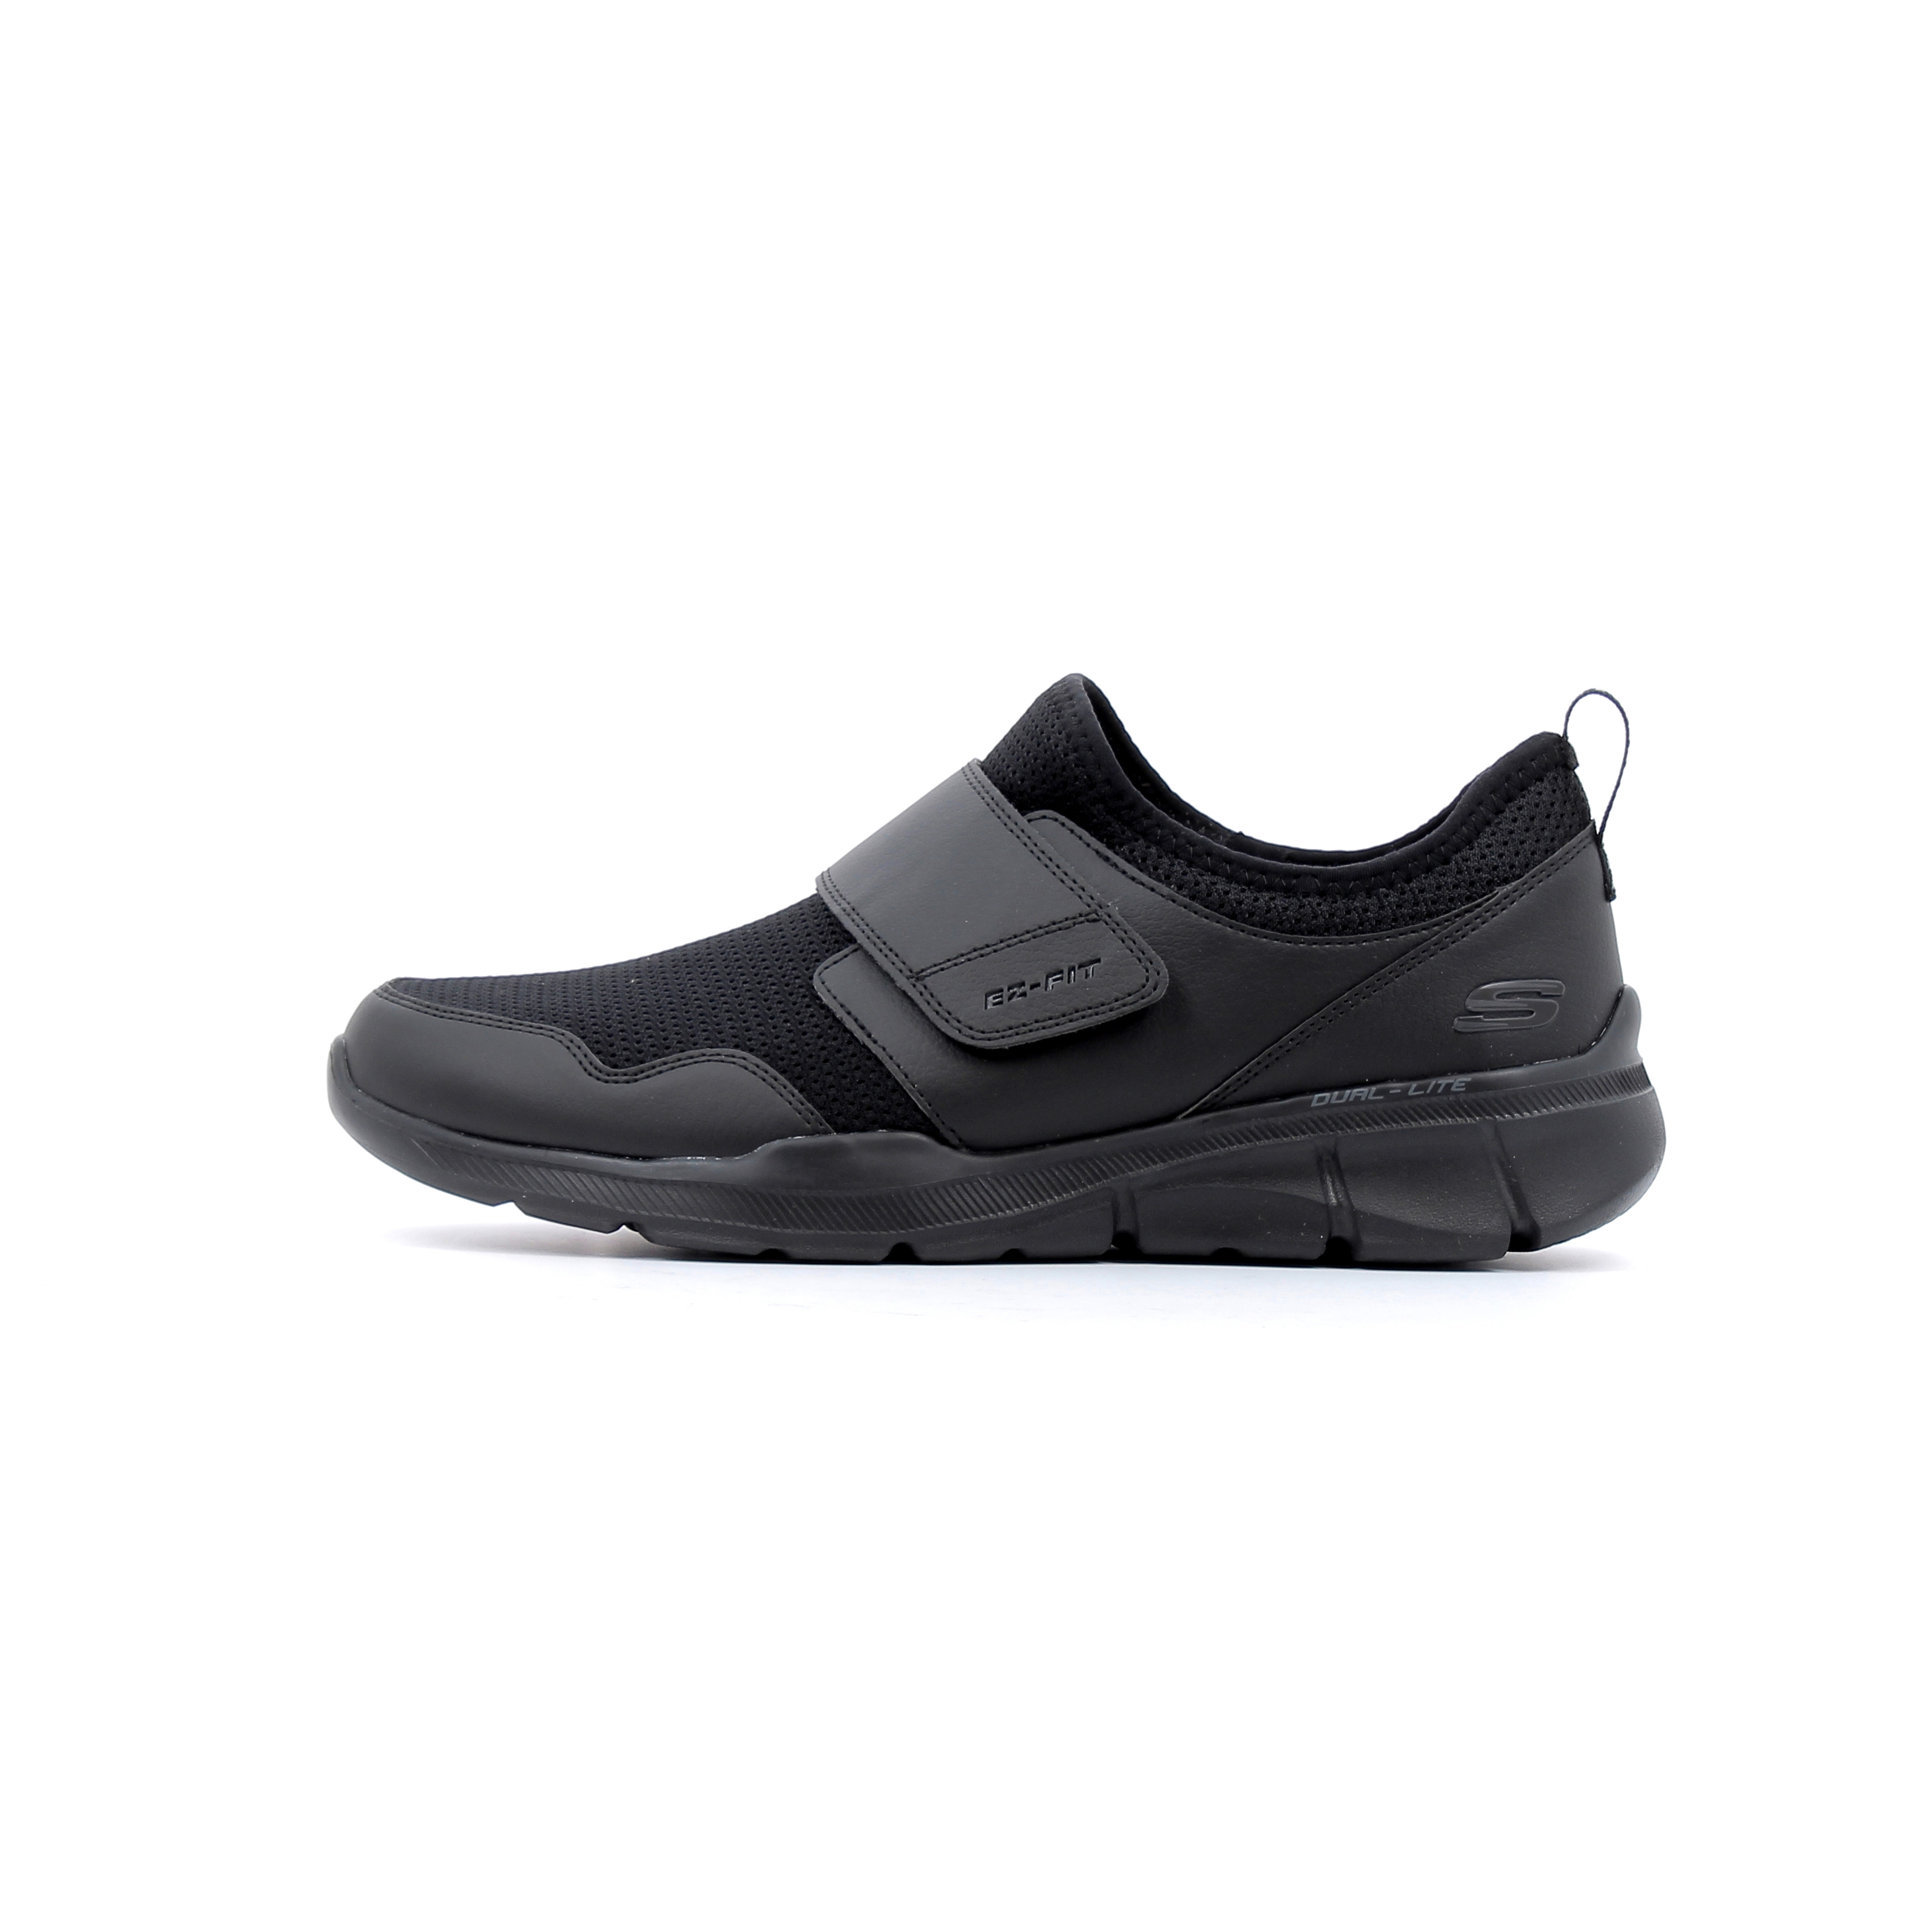 Skechers Chaussures 0 Equalizer 3 Skechers Skechers Equalizer Equalizer 3 Chaussures 3 Chaussures 0 VqSzLMjGUp